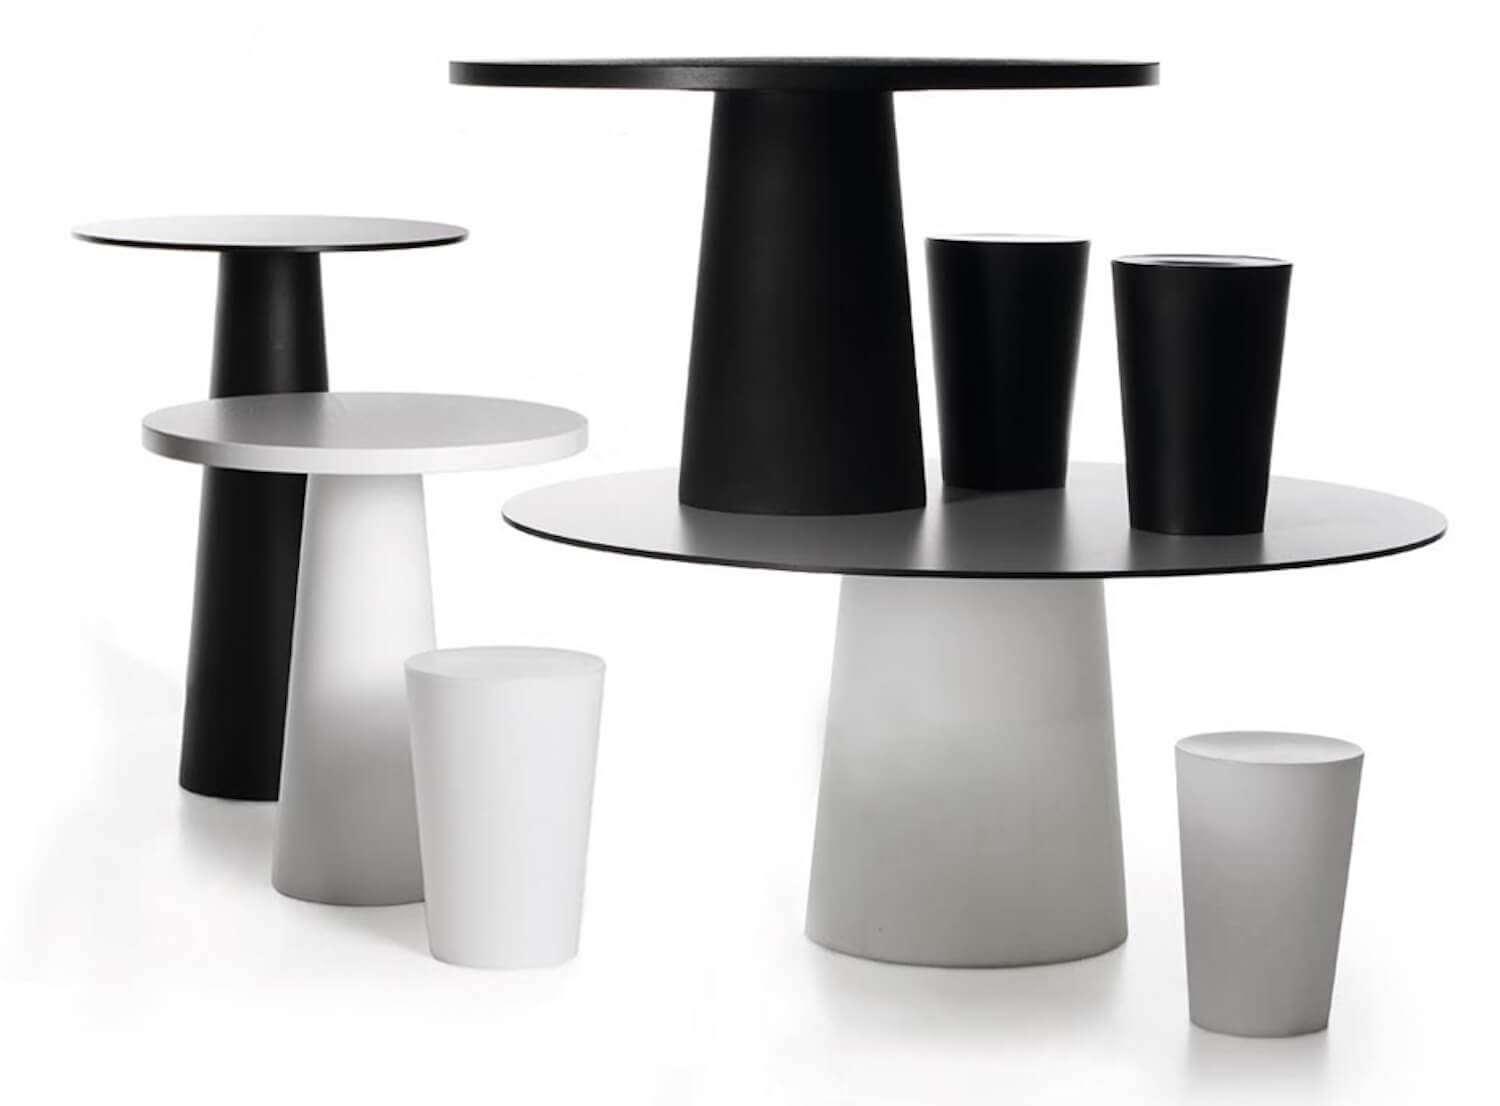 est living marcel wanders interview Container Table Marcel Wanders Moooi dezeen 01